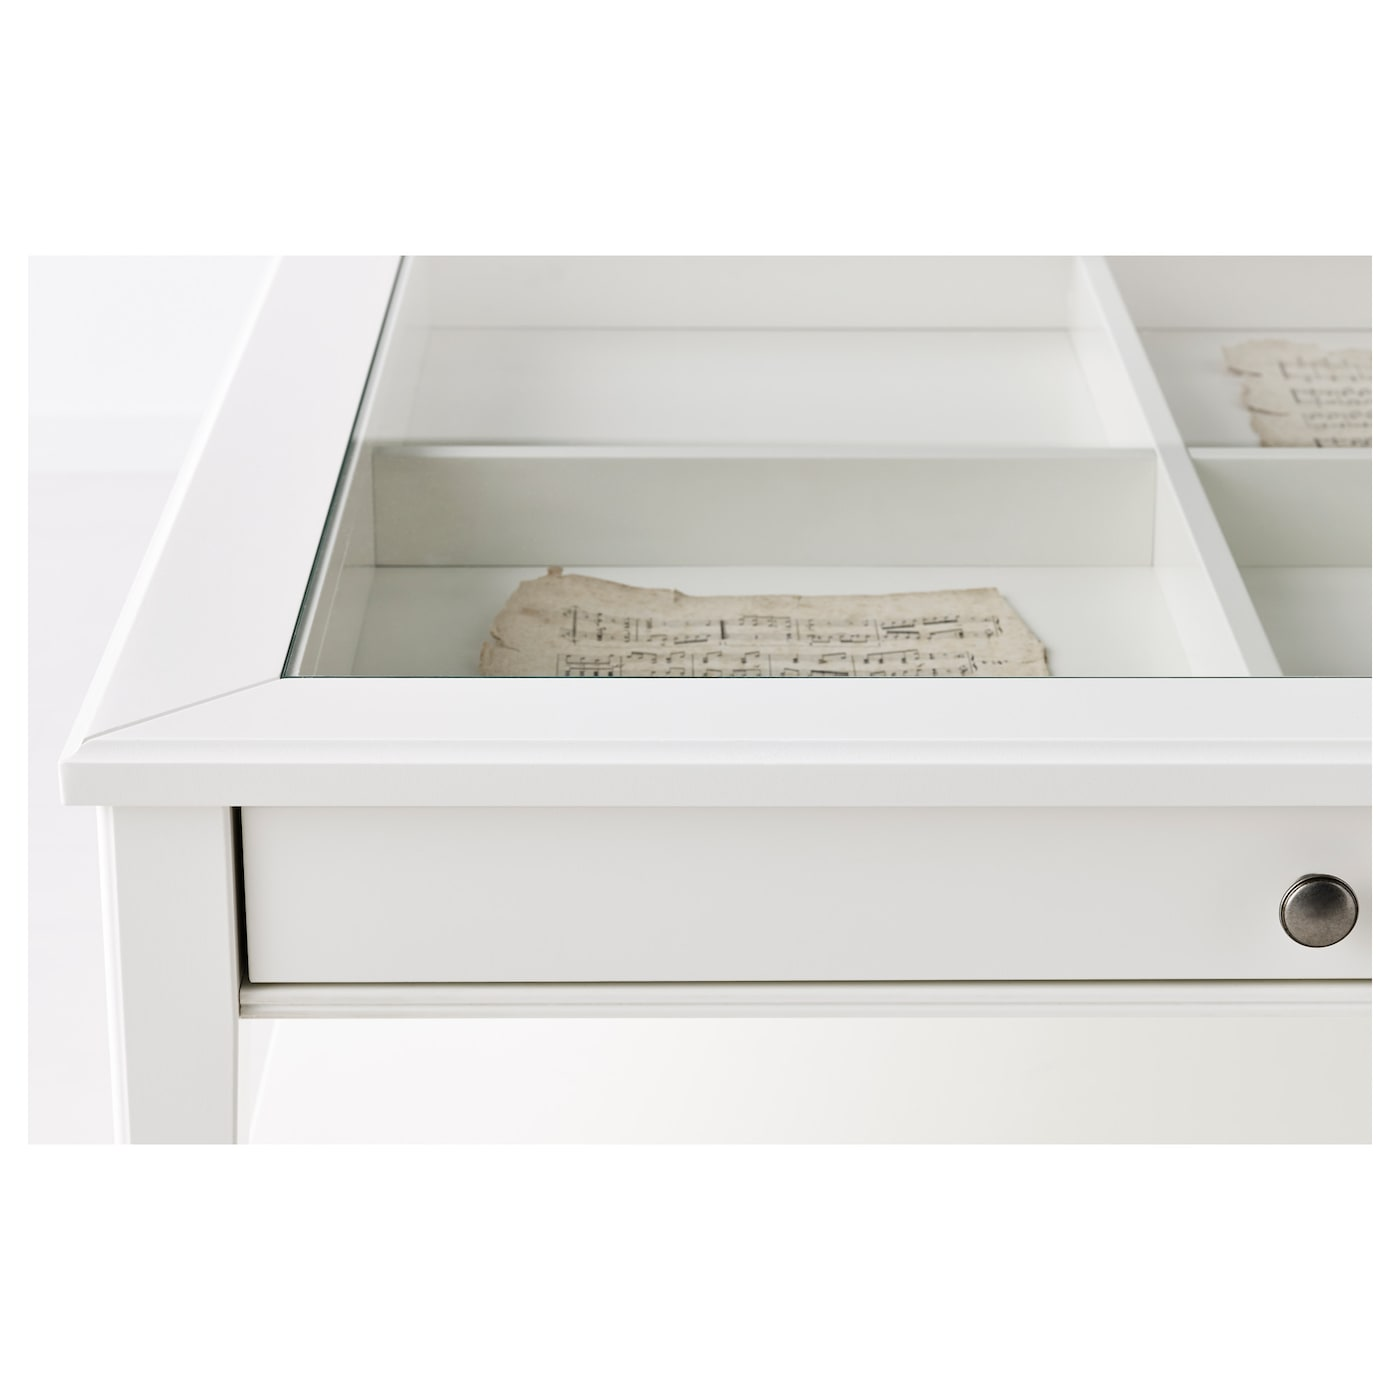 Liatorp coffee table white glass 93x93 cm ikea for Ikea glass table tops